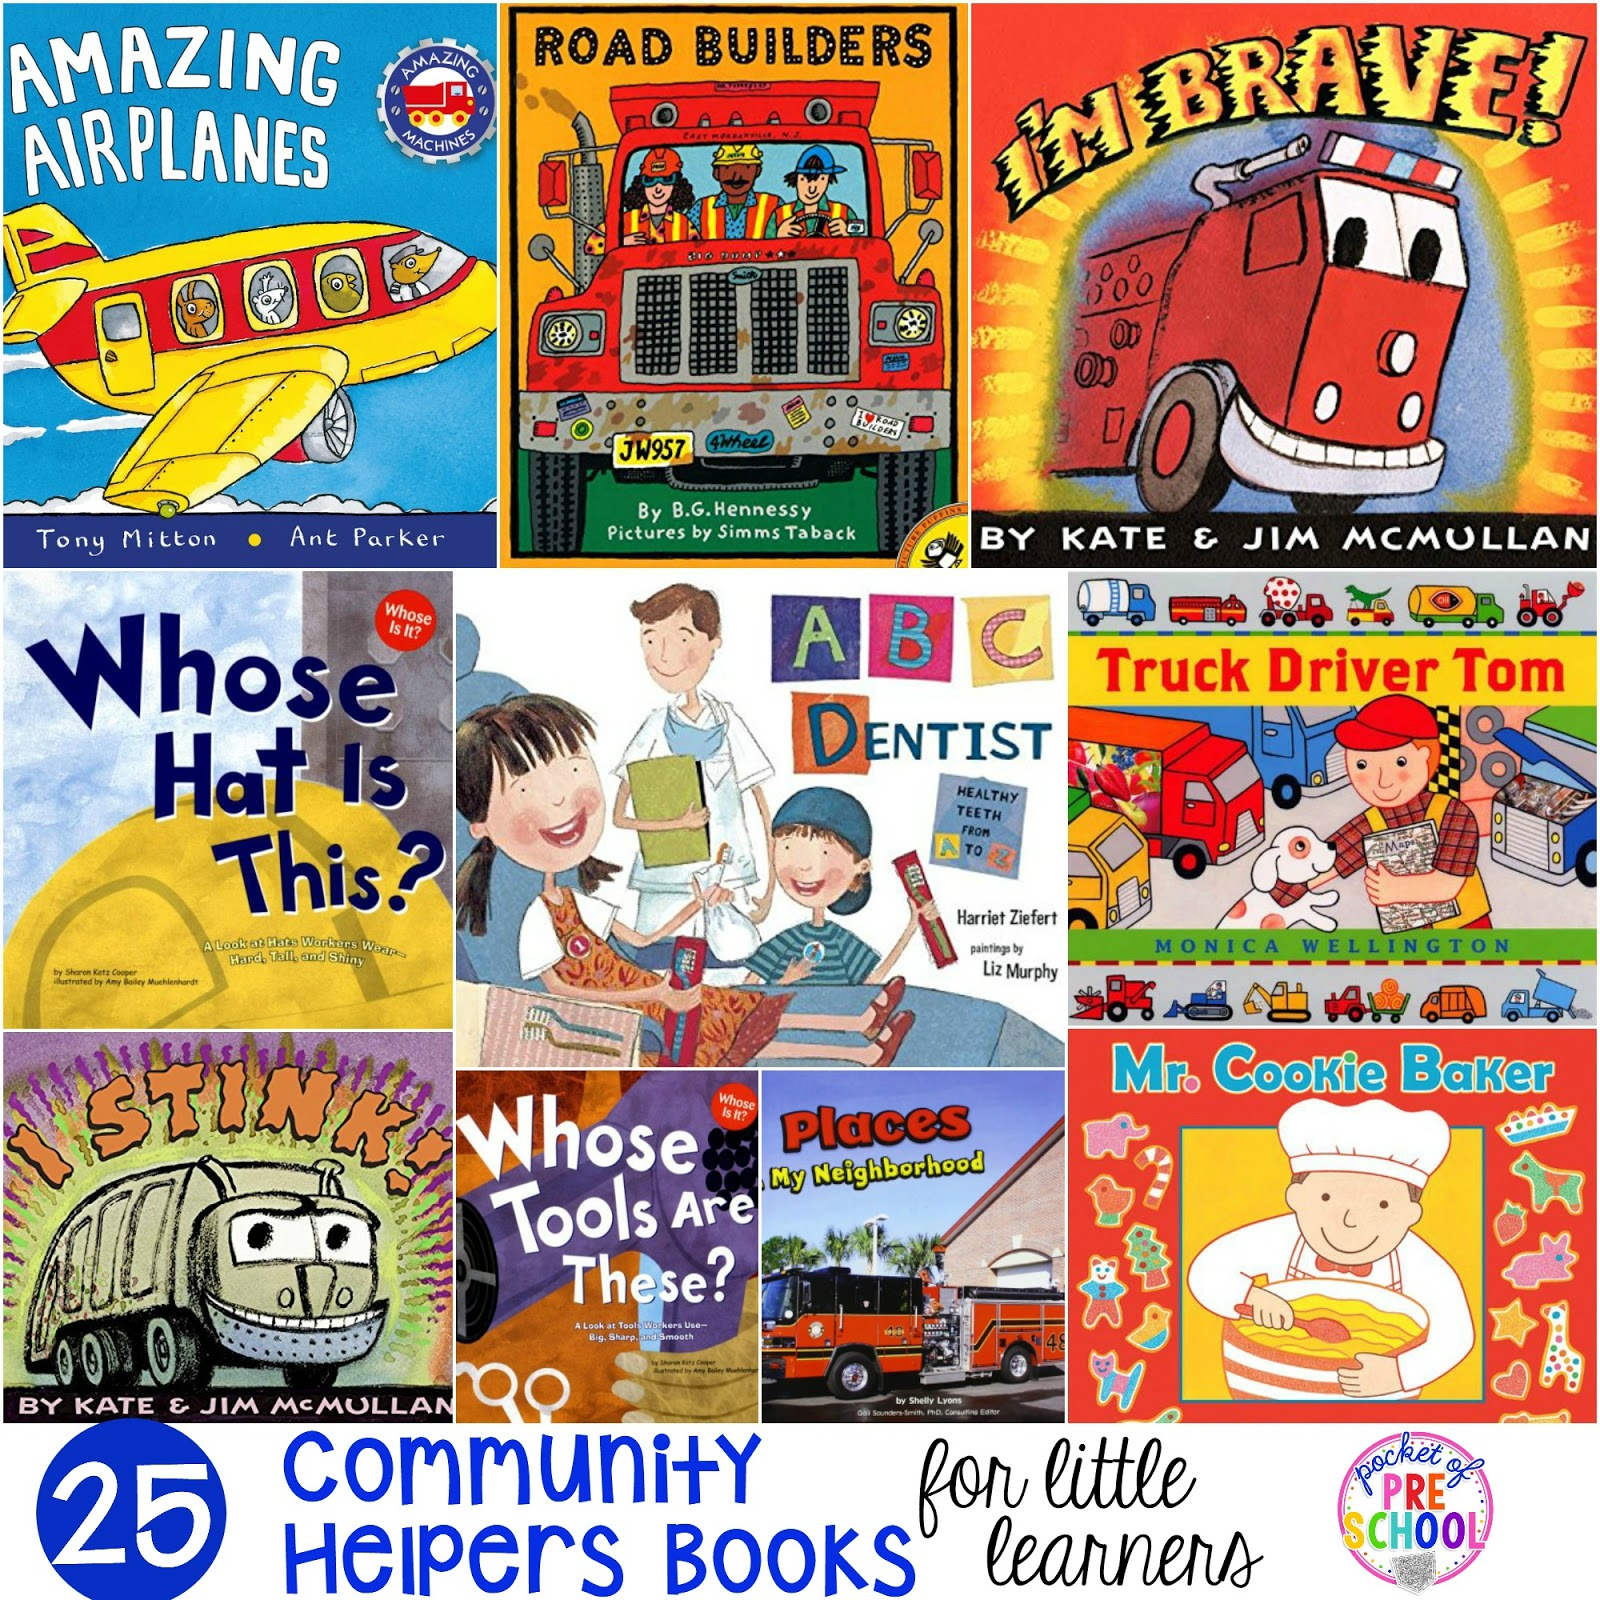 Community Helpers Books For Little Learners